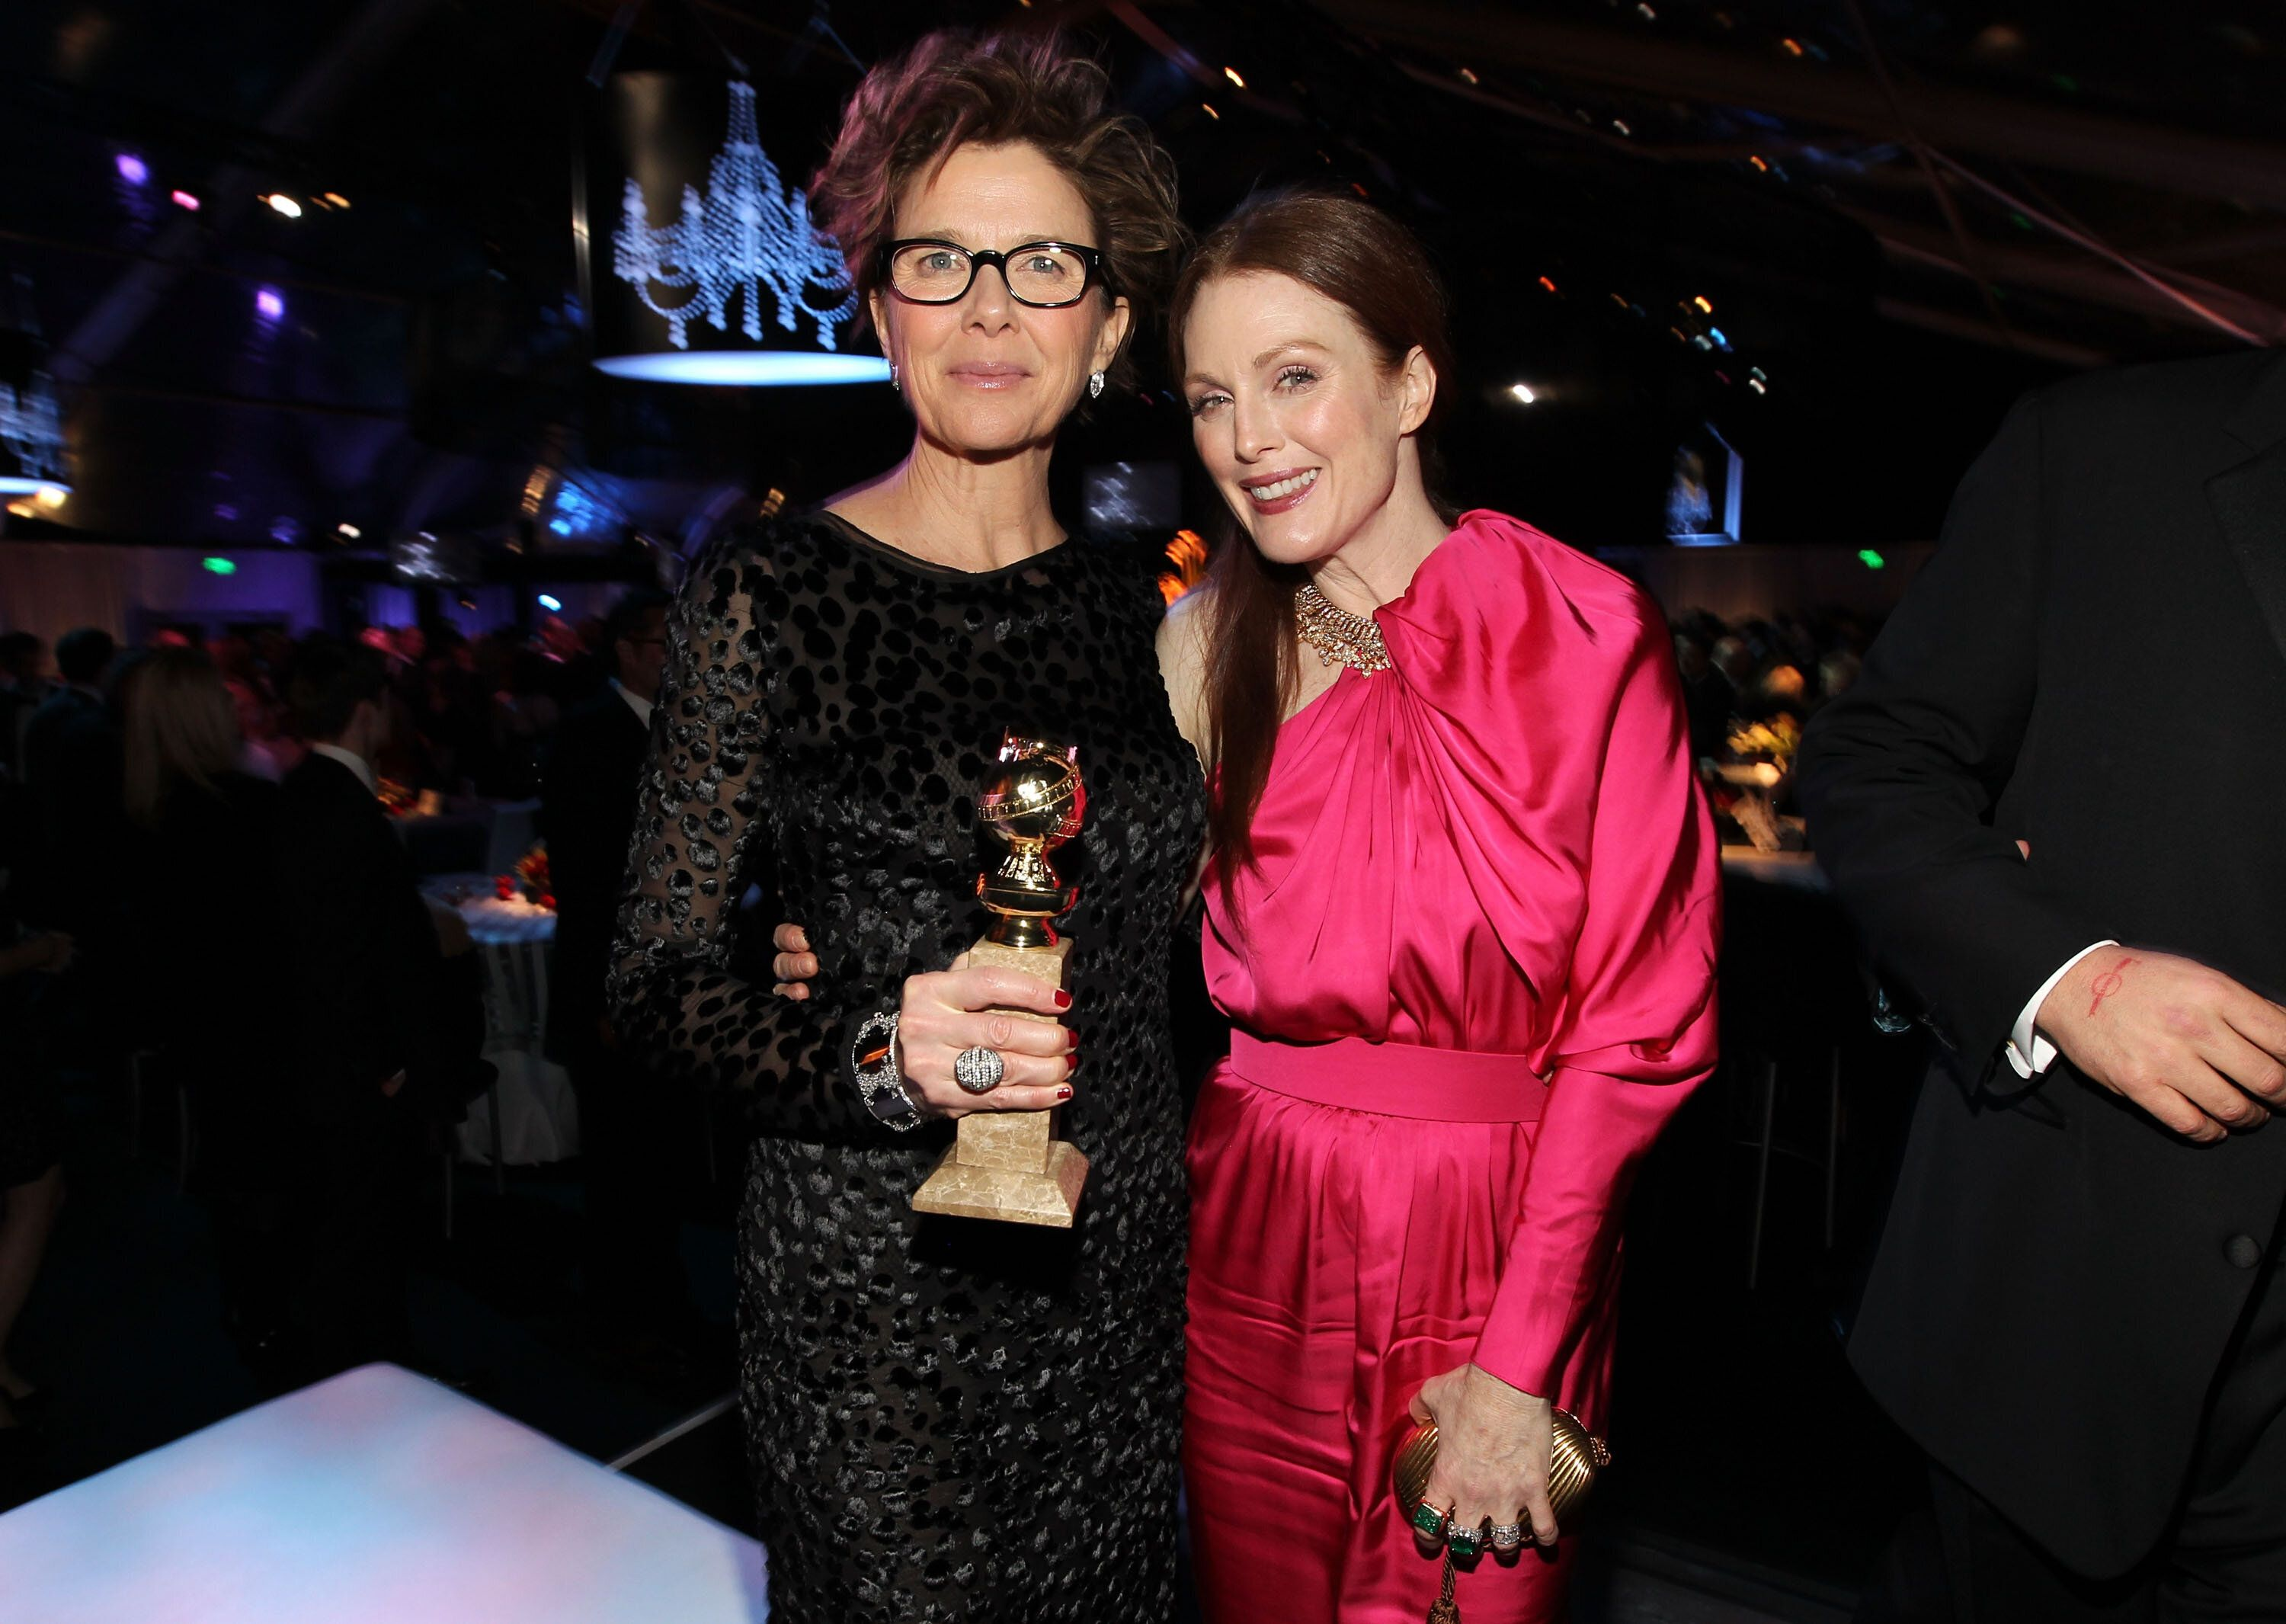 Annette Bening and Julianne Moore in January 2011.